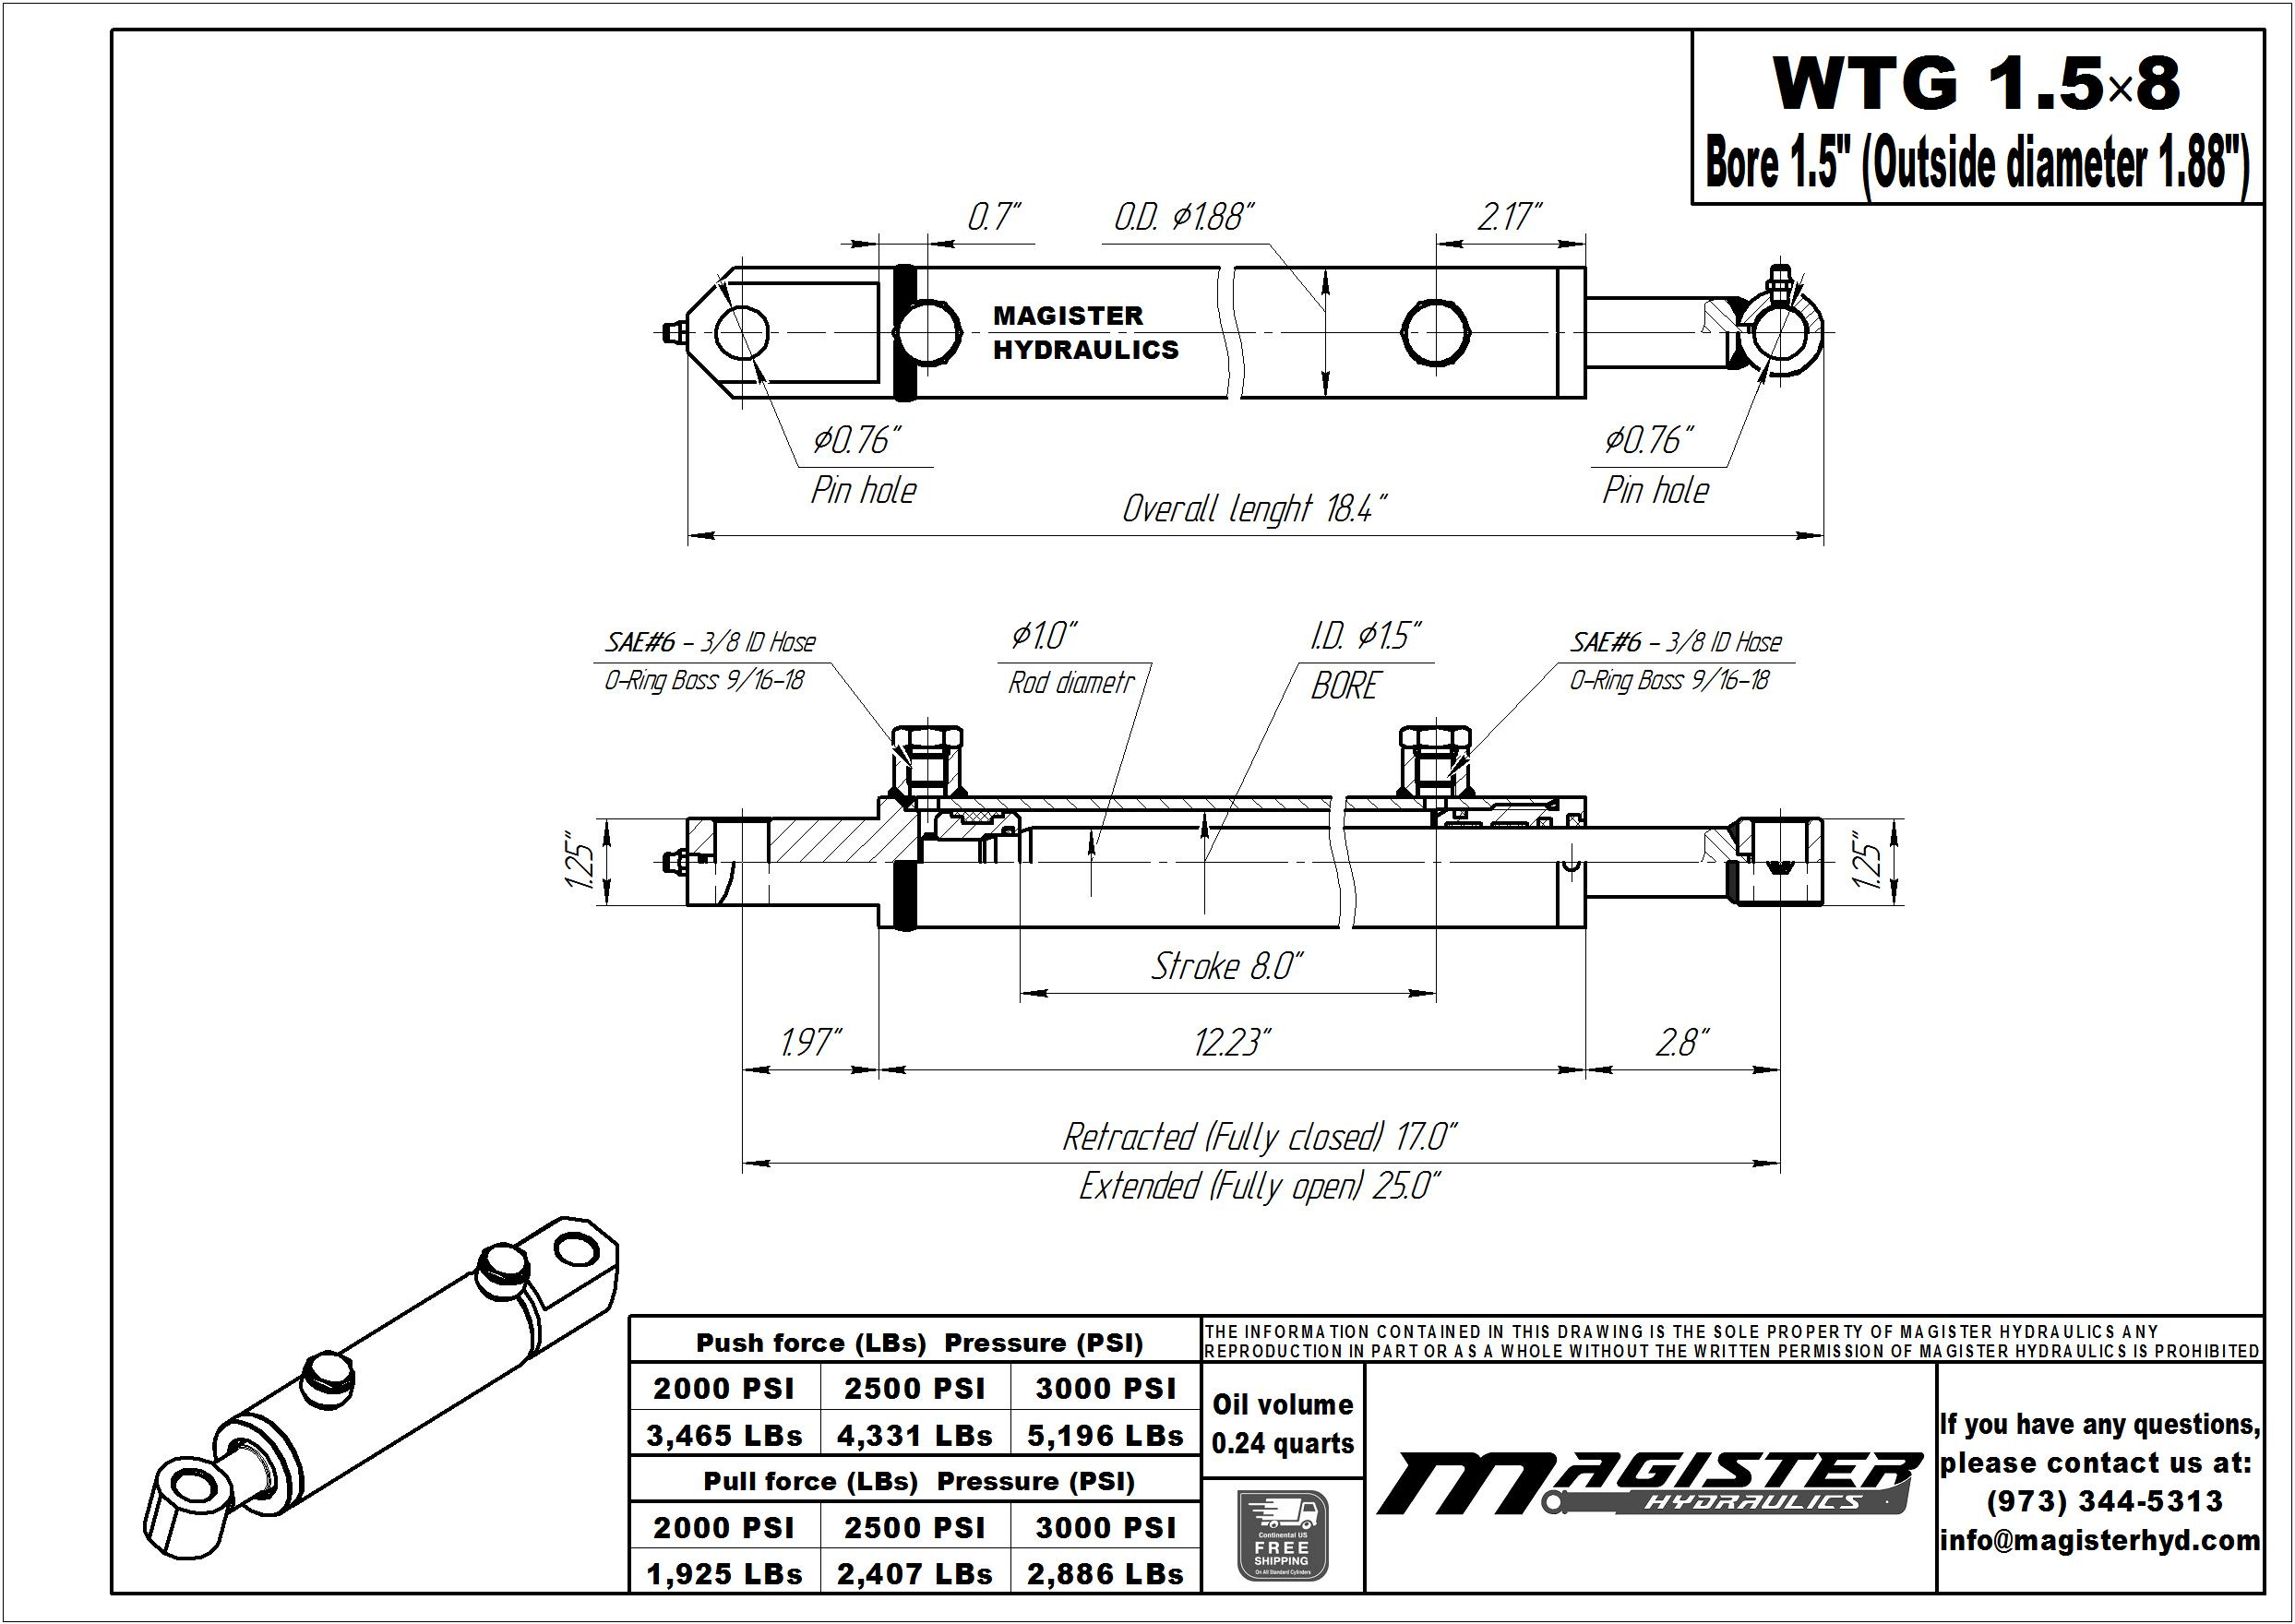 1.5 bore x 8 stroke hydraulic cylinder, welded tang double acting cylinder | Magister Hydraulics